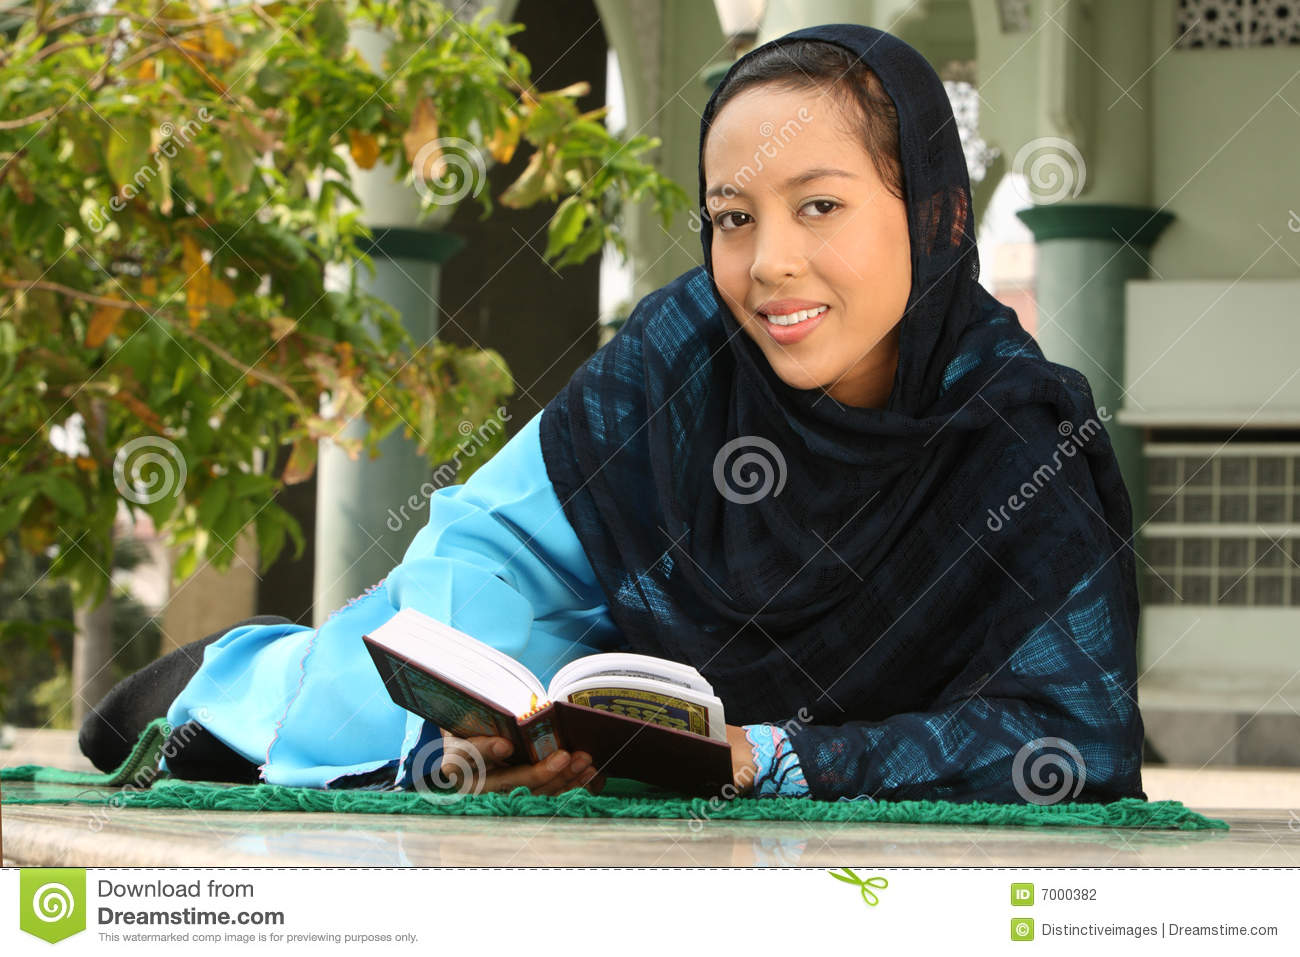 hay muslim girl personals The challenges of young muslim girls to ignore the pressures of dating in the western world the muslim girl muslim girl problems: dating.